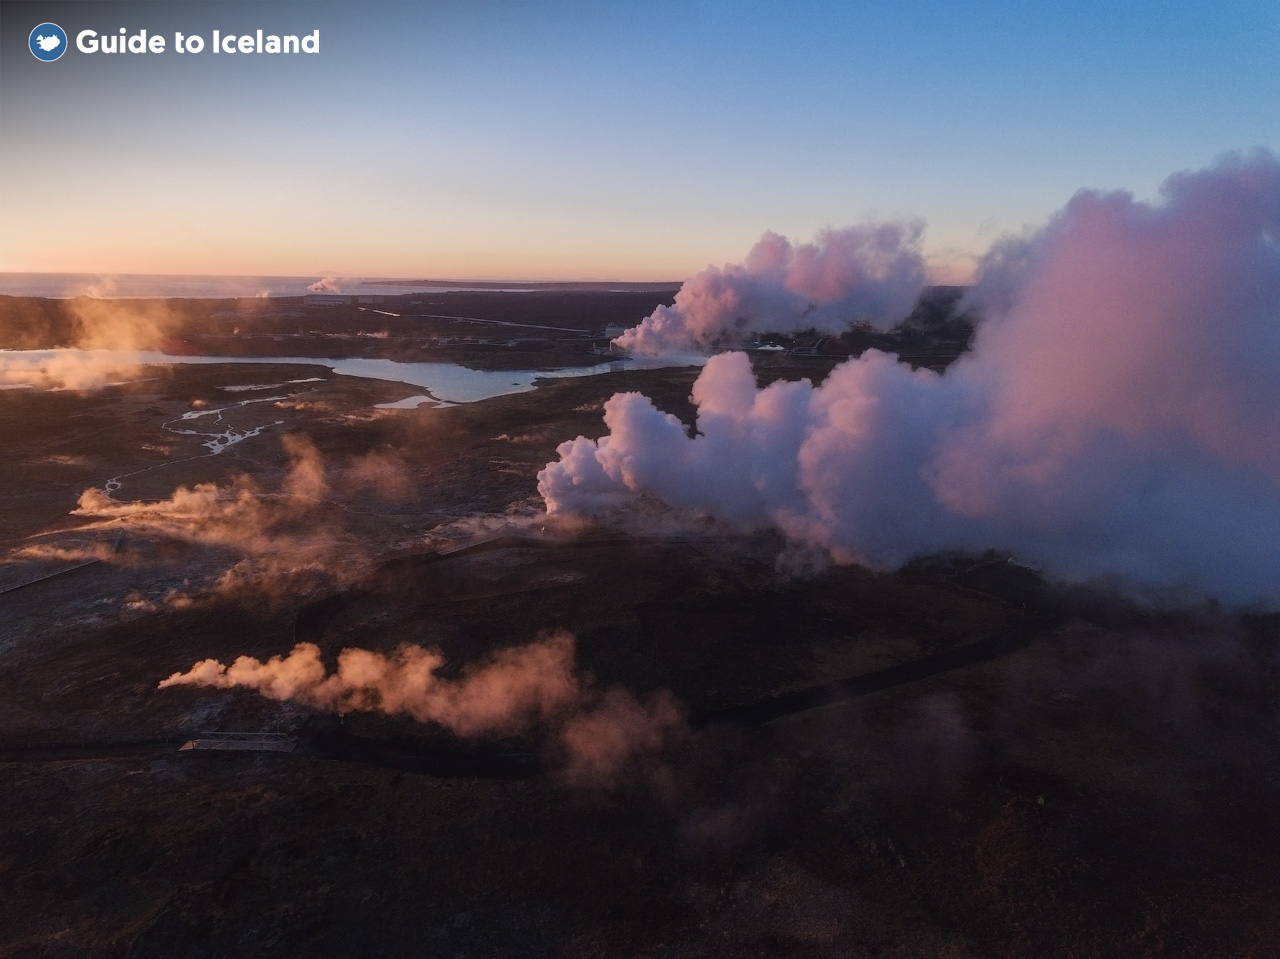 Geothermal forces can be seen at geothermal area around Iceland.